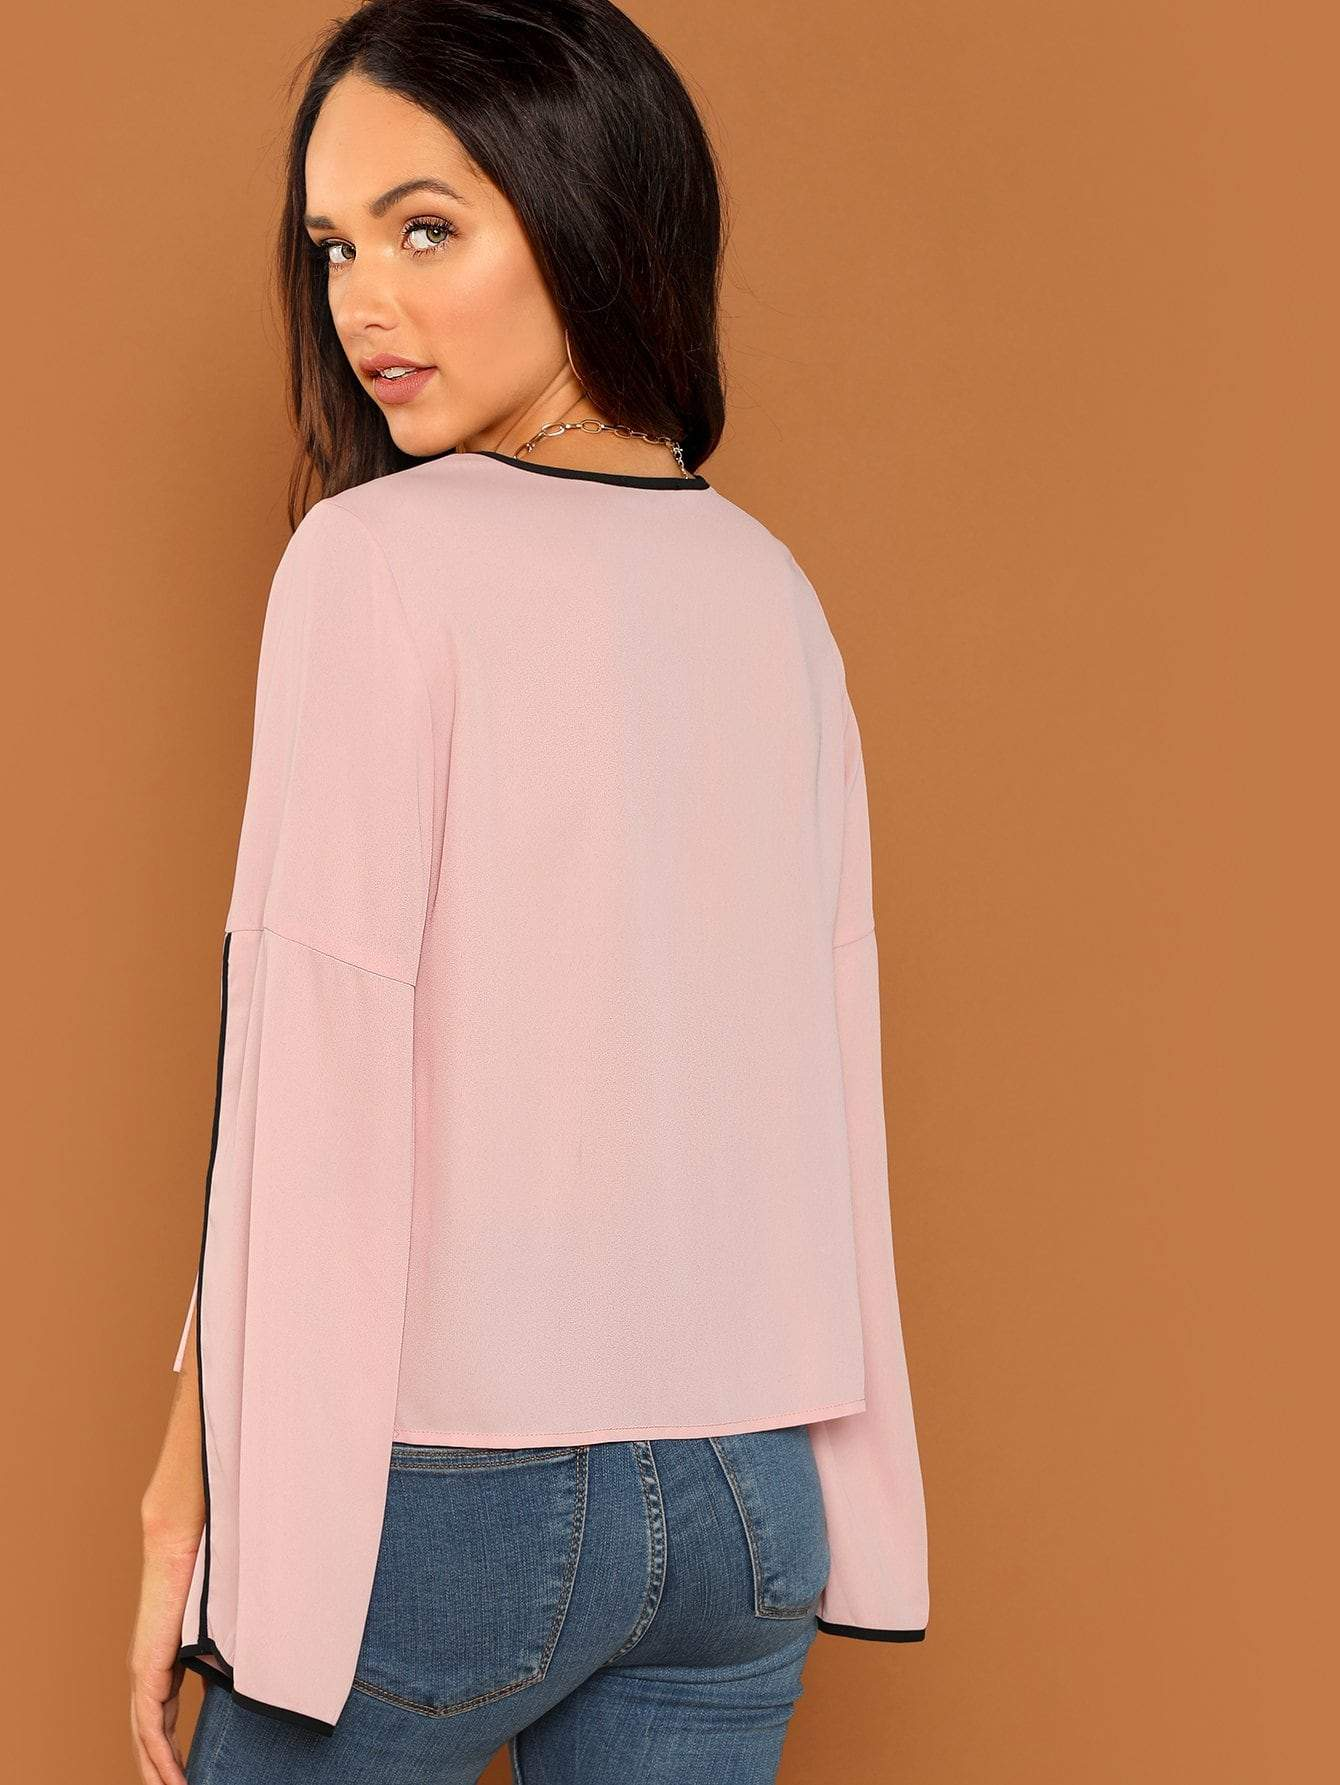 Contrast Bell Sleeve Top - LoveSylvester